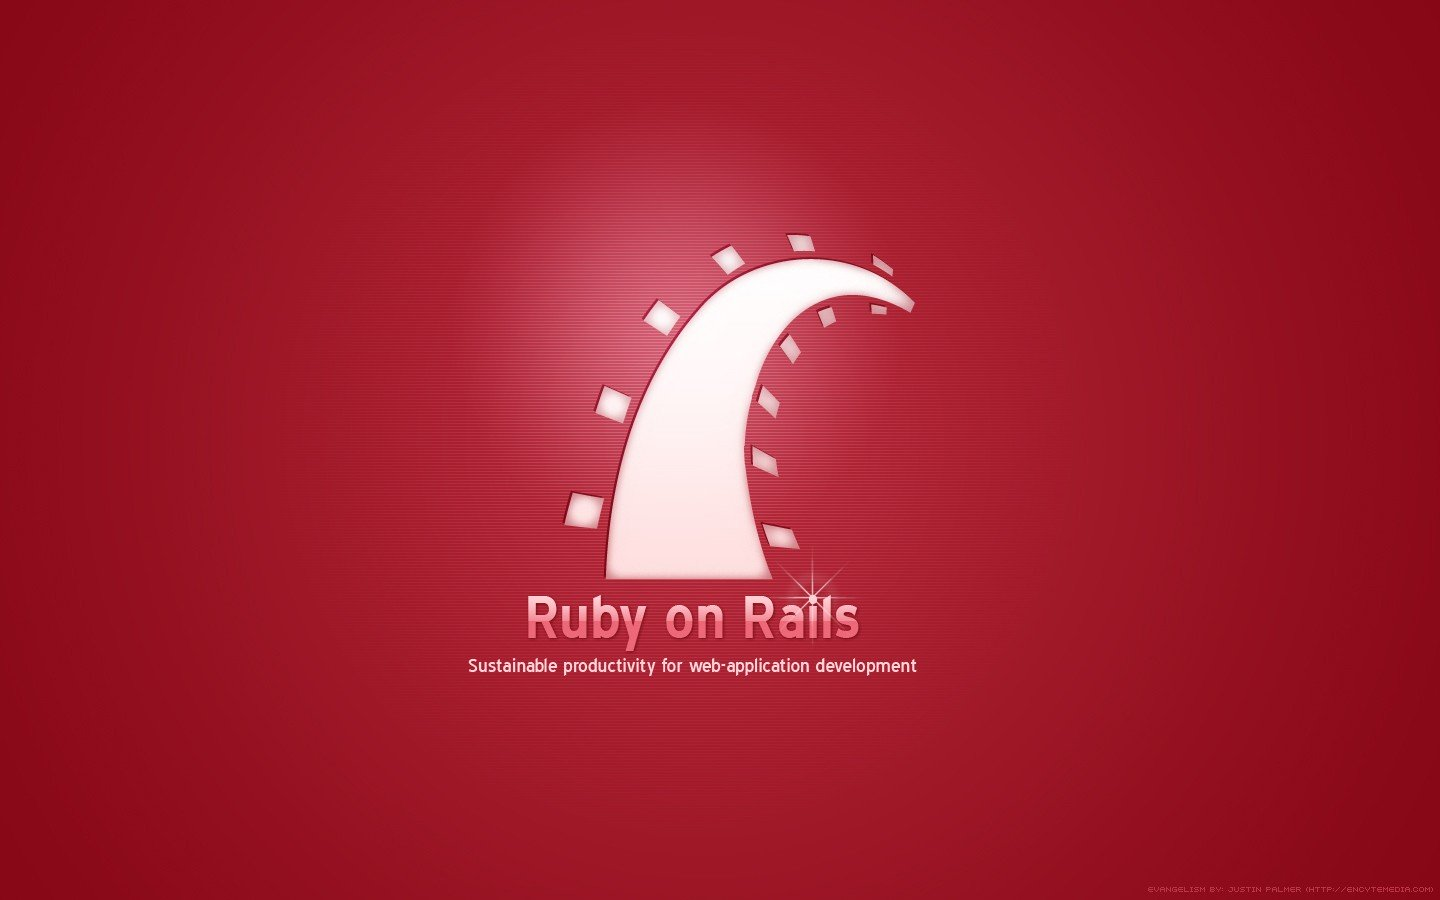 Installing Ruby on Rails on Plesk 12